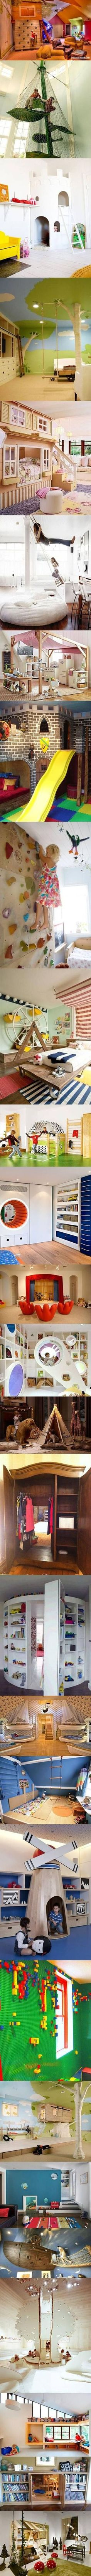 Climbing walls and beanstalks aren't synonymous with kids rooms, but that doesn't mean they don't exist. These geeky (and possibly very wealthy) parents decided to go all out for their children and created some of the most creative rooms to ever hit the internet.